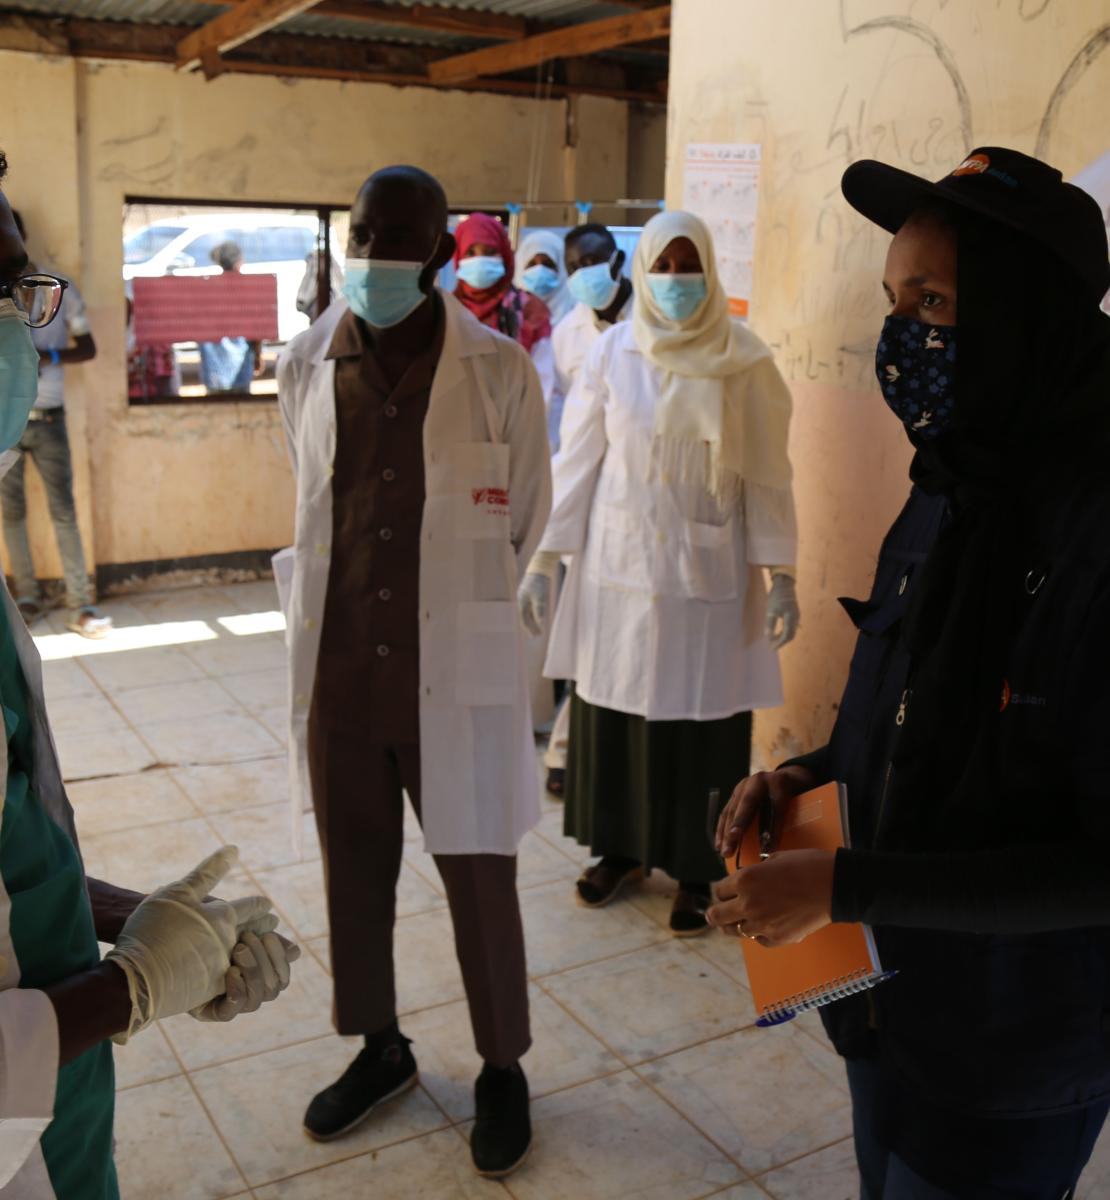 Medical personnel speak to UN staff at the camp medical facility as they wear PPE and social distance.